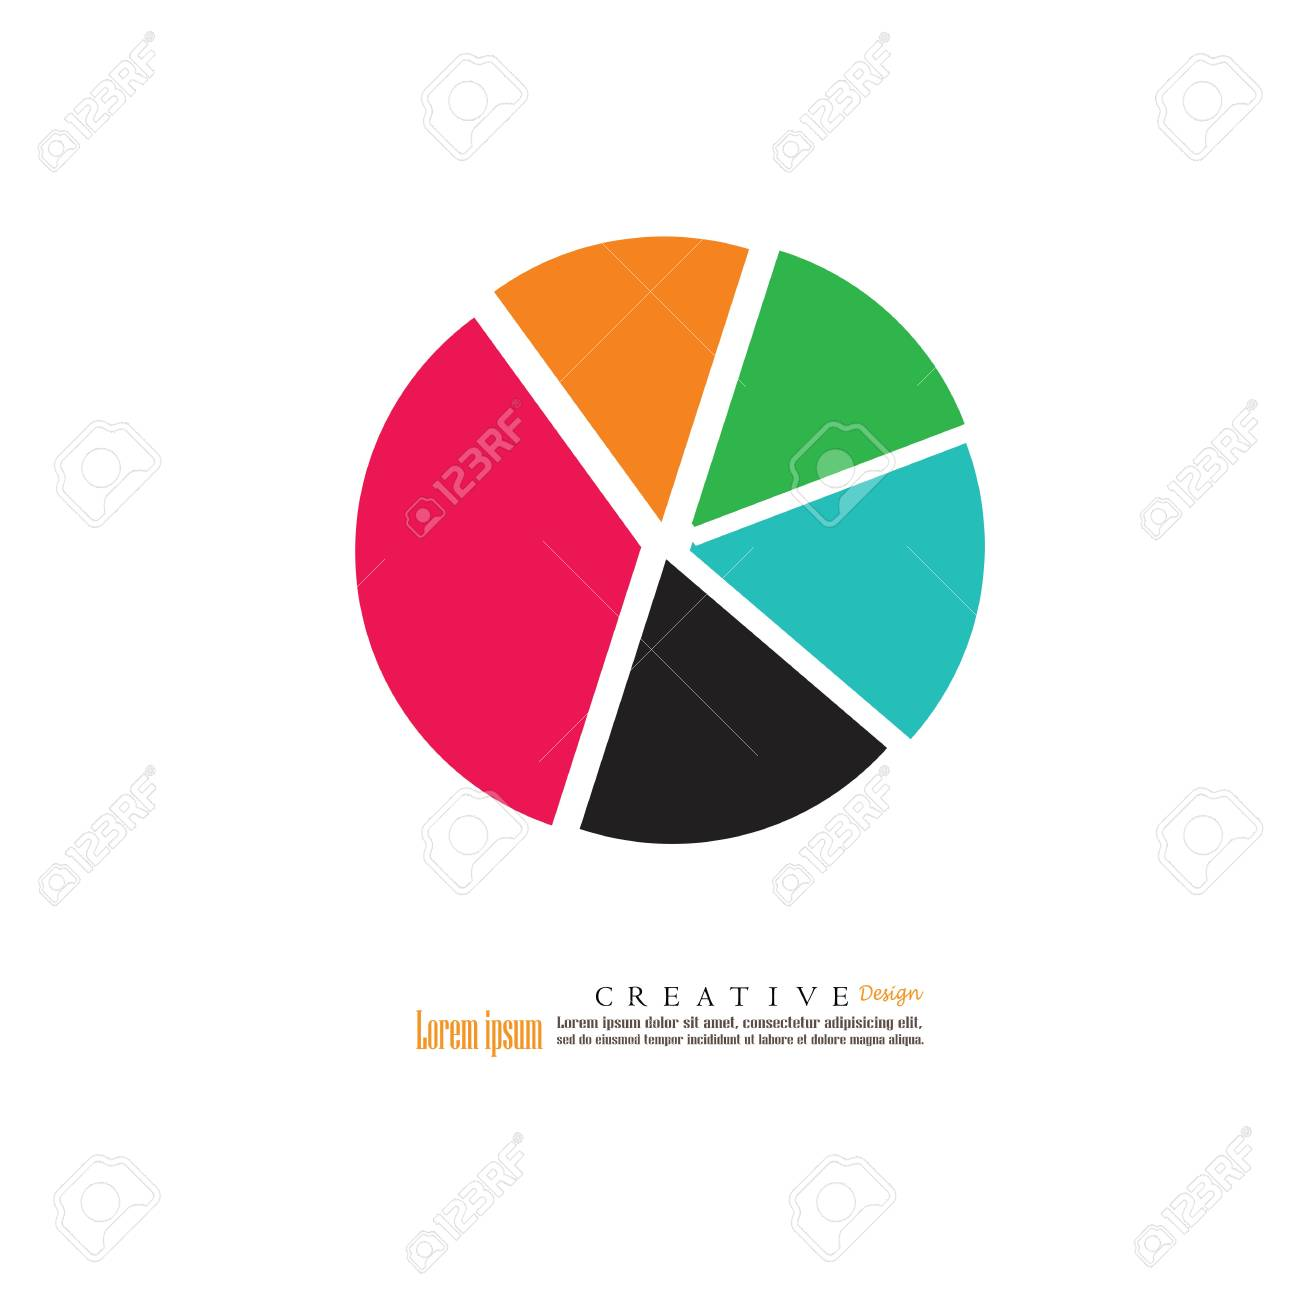 simple business flat pie chart, vector illustration. royalty free